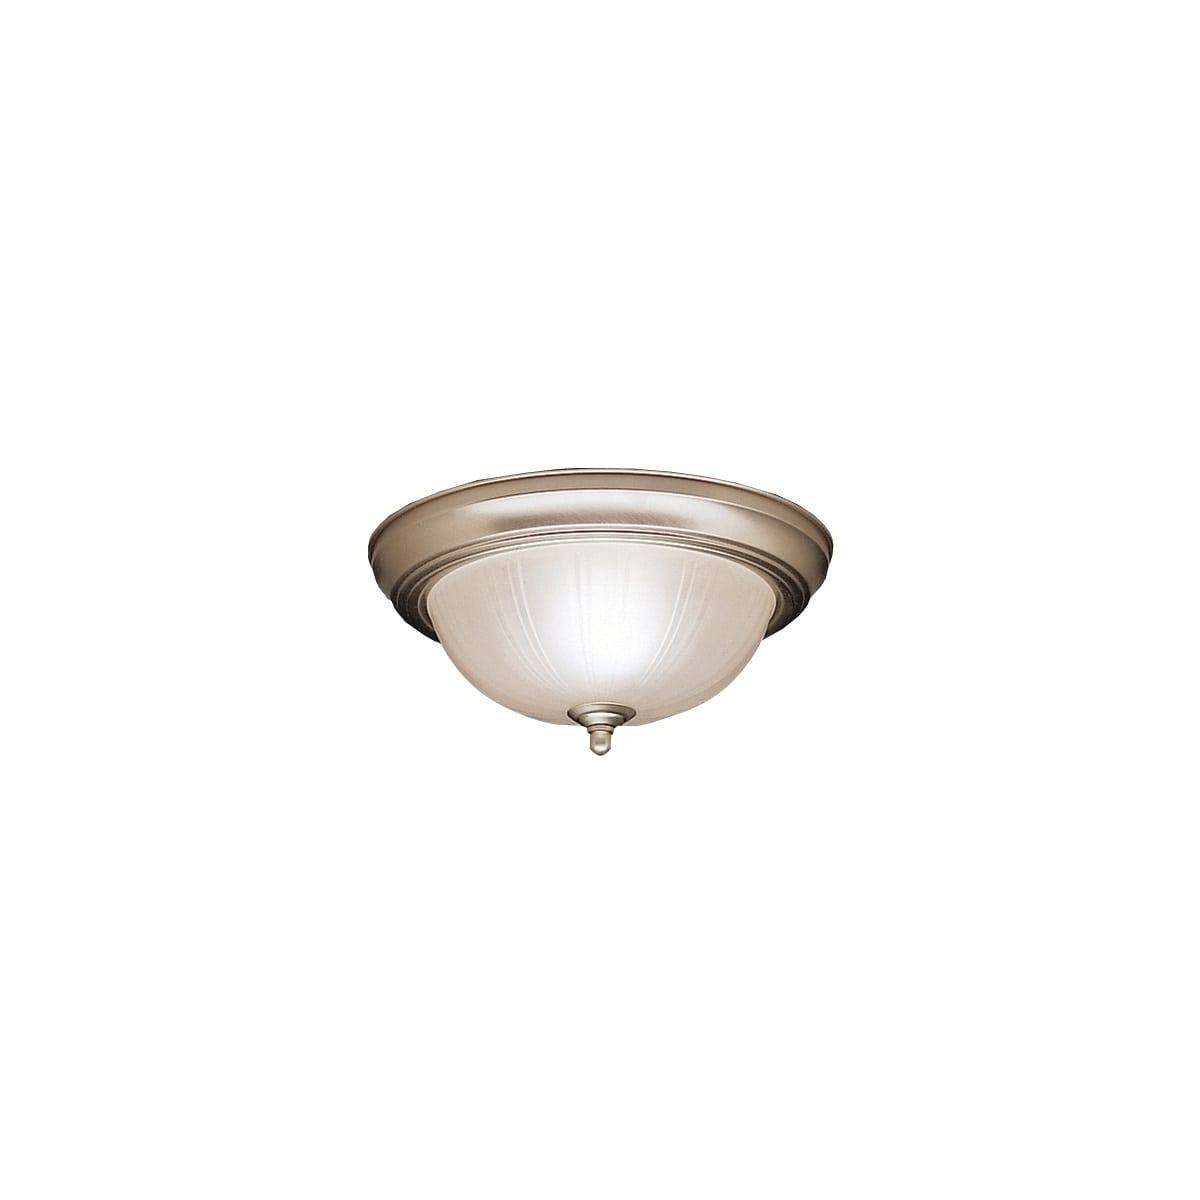 Kichler Brushed Nickel And Frosted Ribbed Glass Flush 2 Light Ceiling Fixture